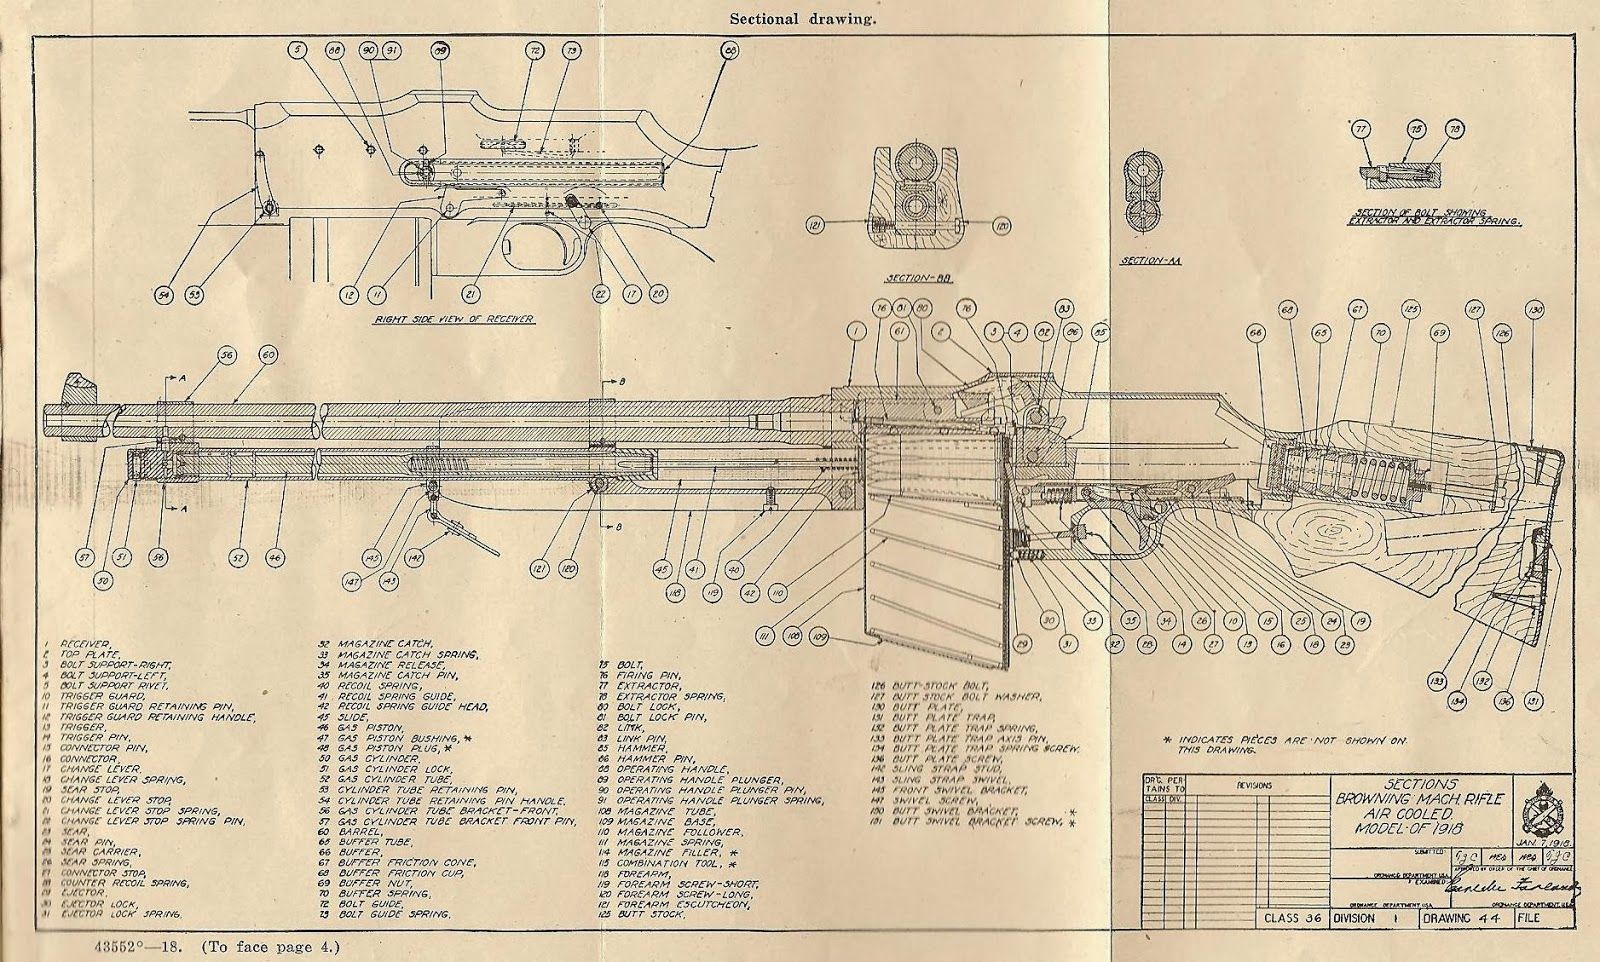 Taurus 25 Acp Schematic Parts Diagram Of The Model 1918 Bar Browning Automatic Rifle Guns